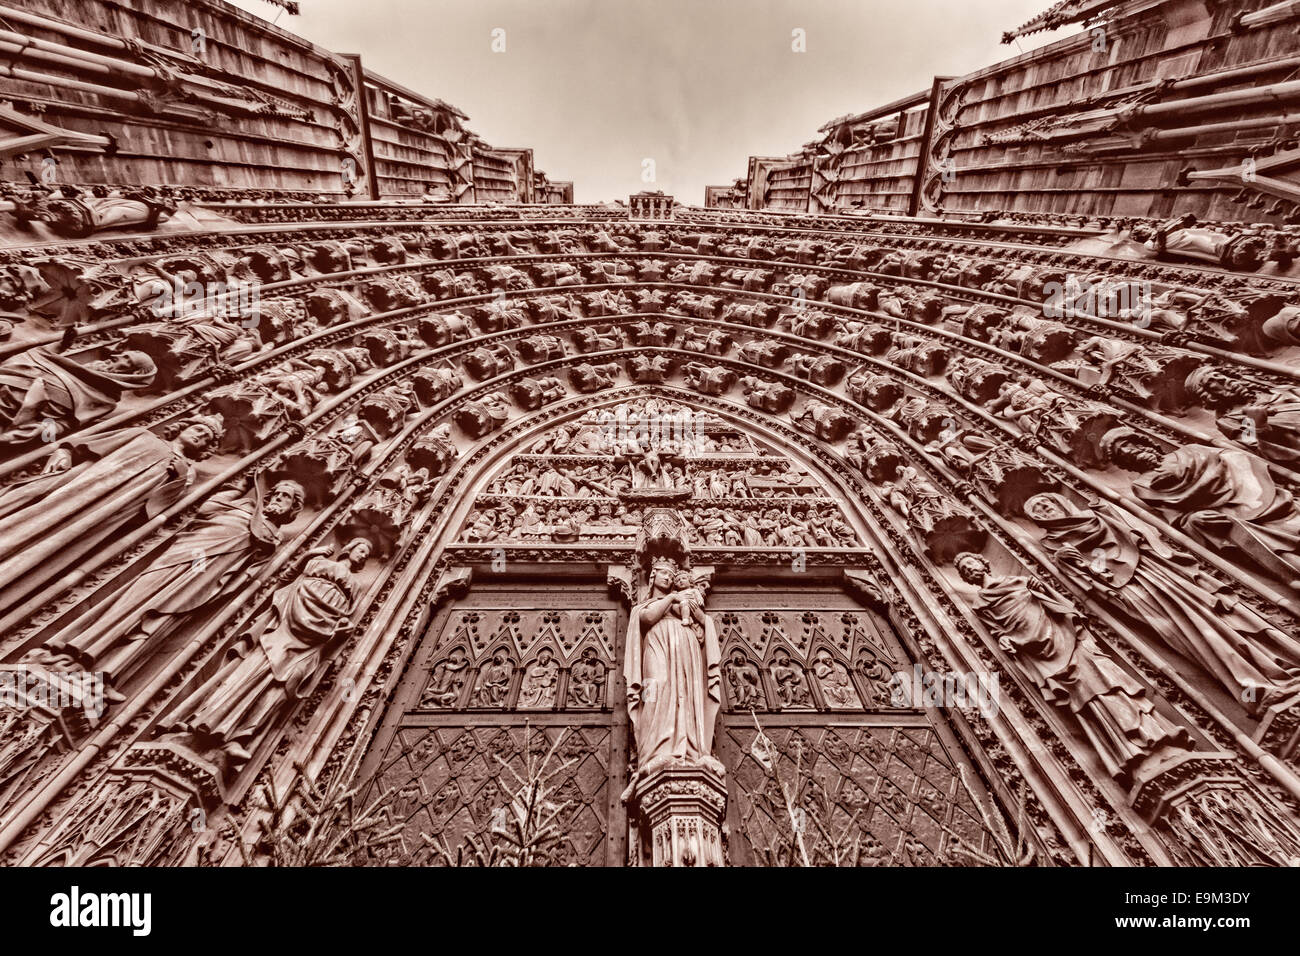 <a href='http://en.wikipedia.org/wiki/Strasbourg_Cathedral' target='_blank'>Strasbourg Cathedral</a> - Stock Image